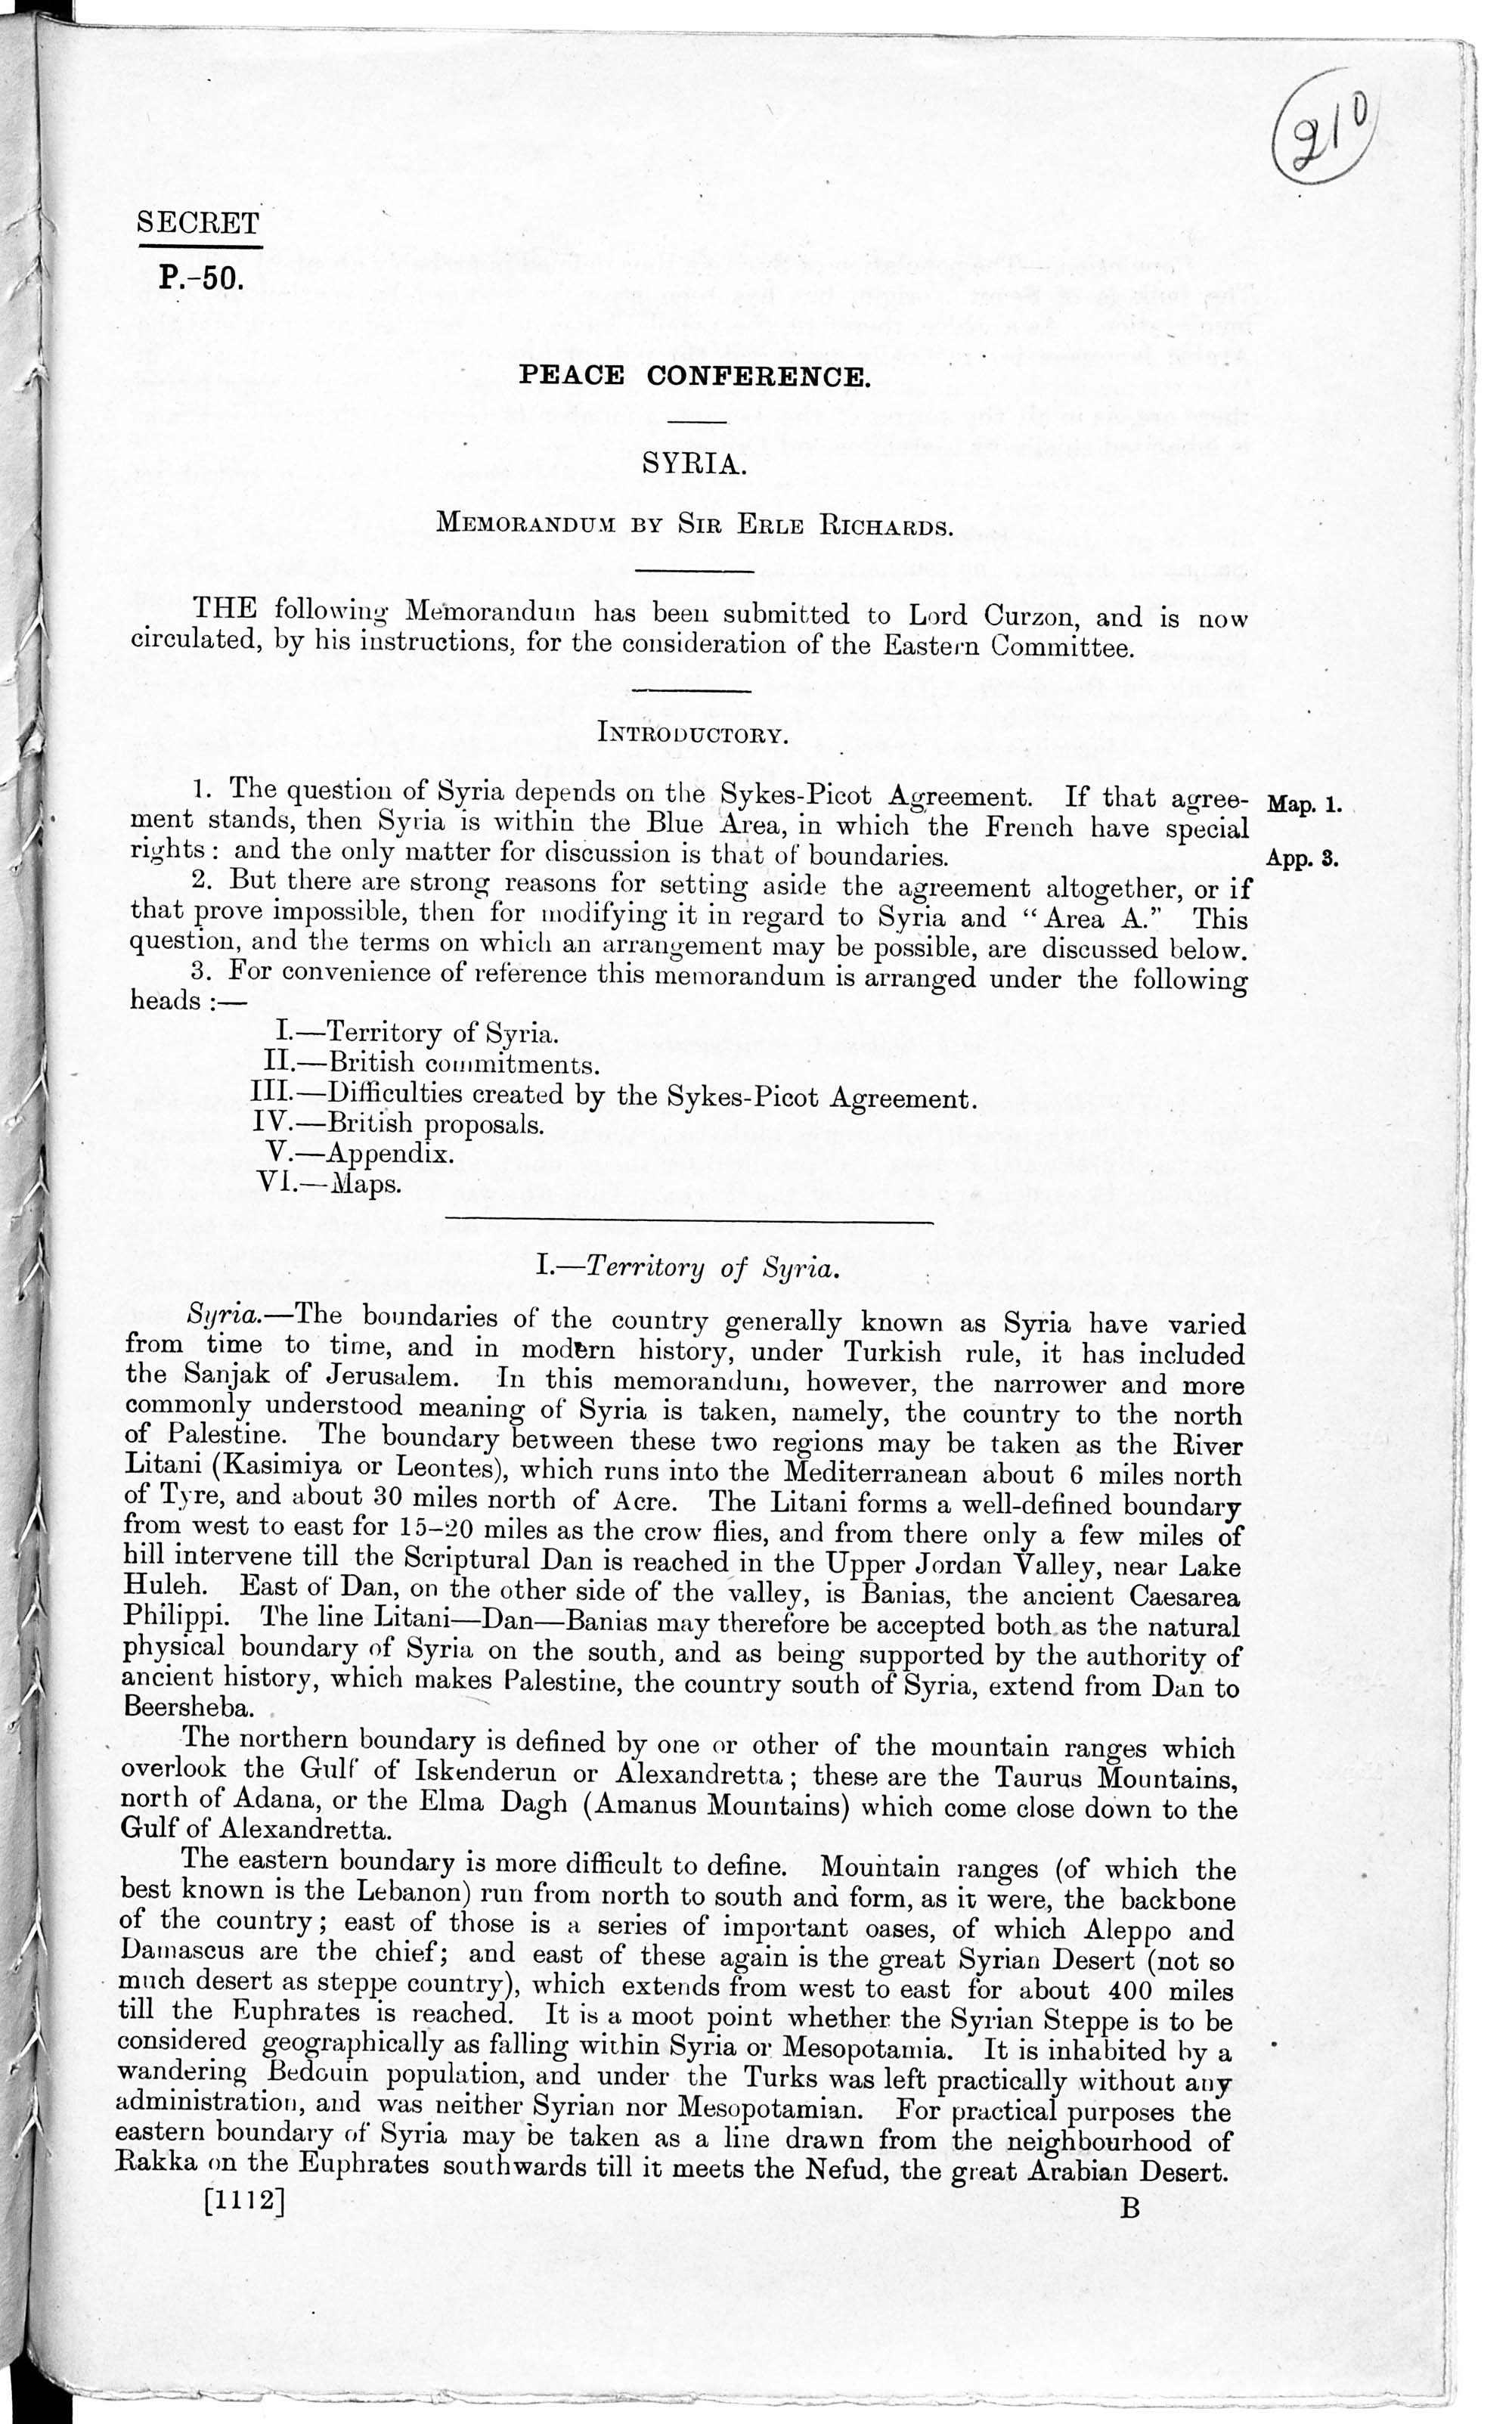 Pages from three memoranda prepared by Sir Erle Richards, summarising British commitments in Syria, Arabia and Palestine, and outlining British policy to be pursued at the Paris Peace Conference.